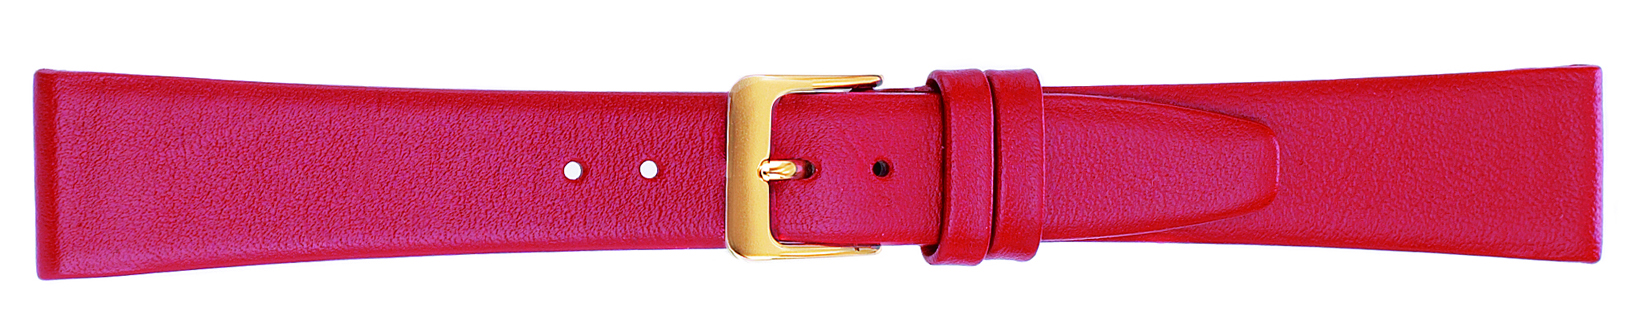 16MM Leather Band Red Smooth Calf-0